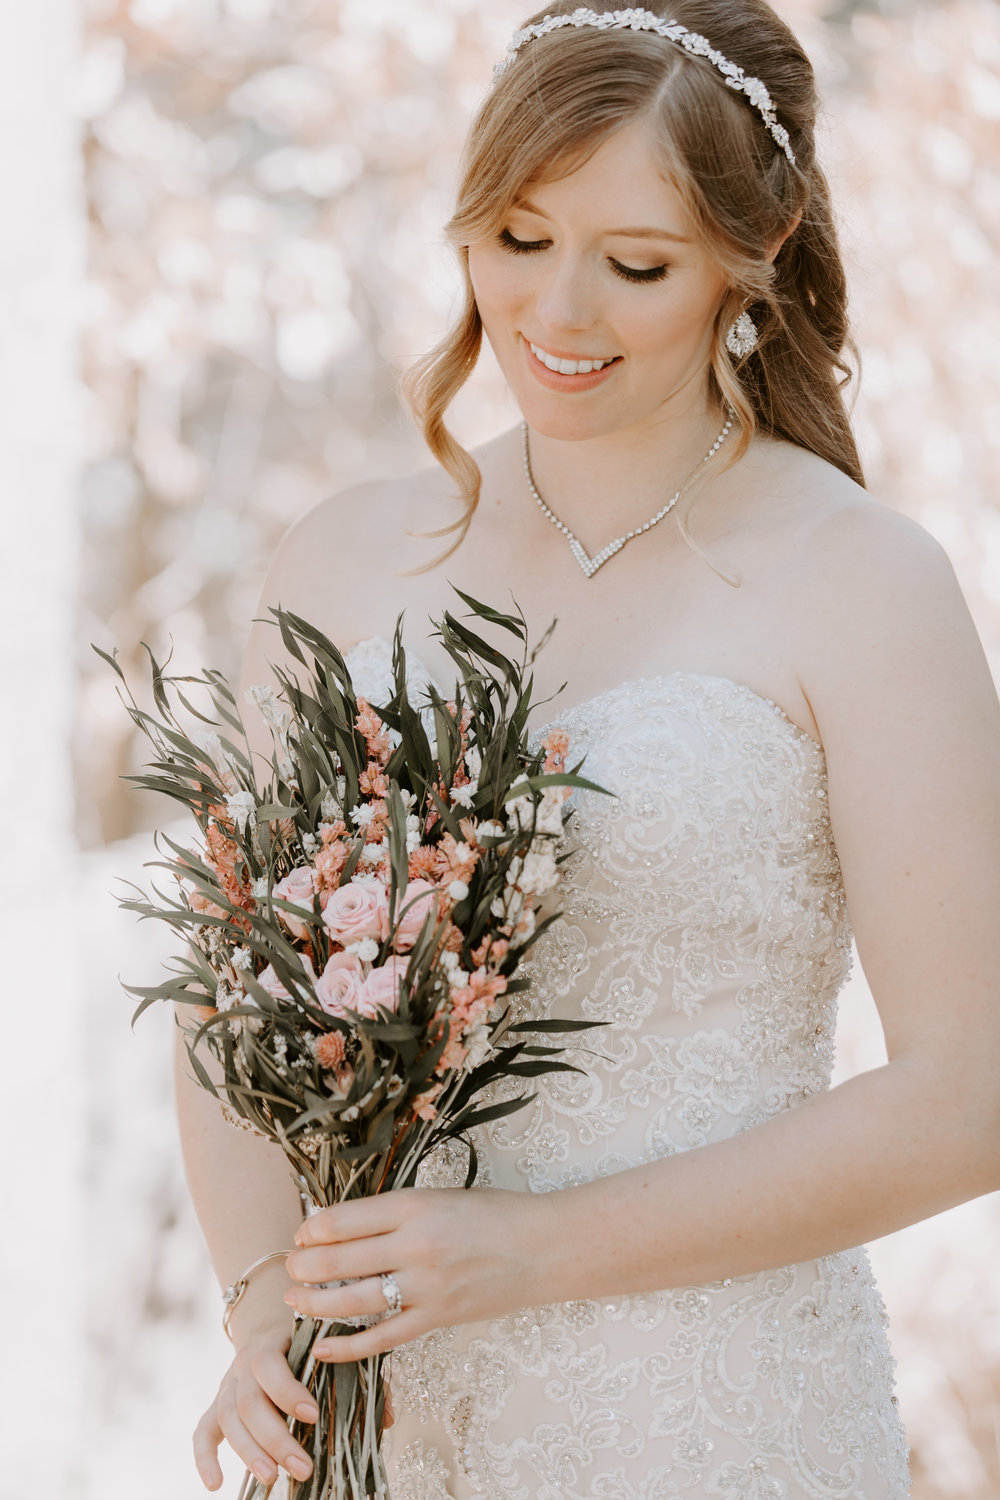 C+A_LivermoreWedding_10212018-257.JPG